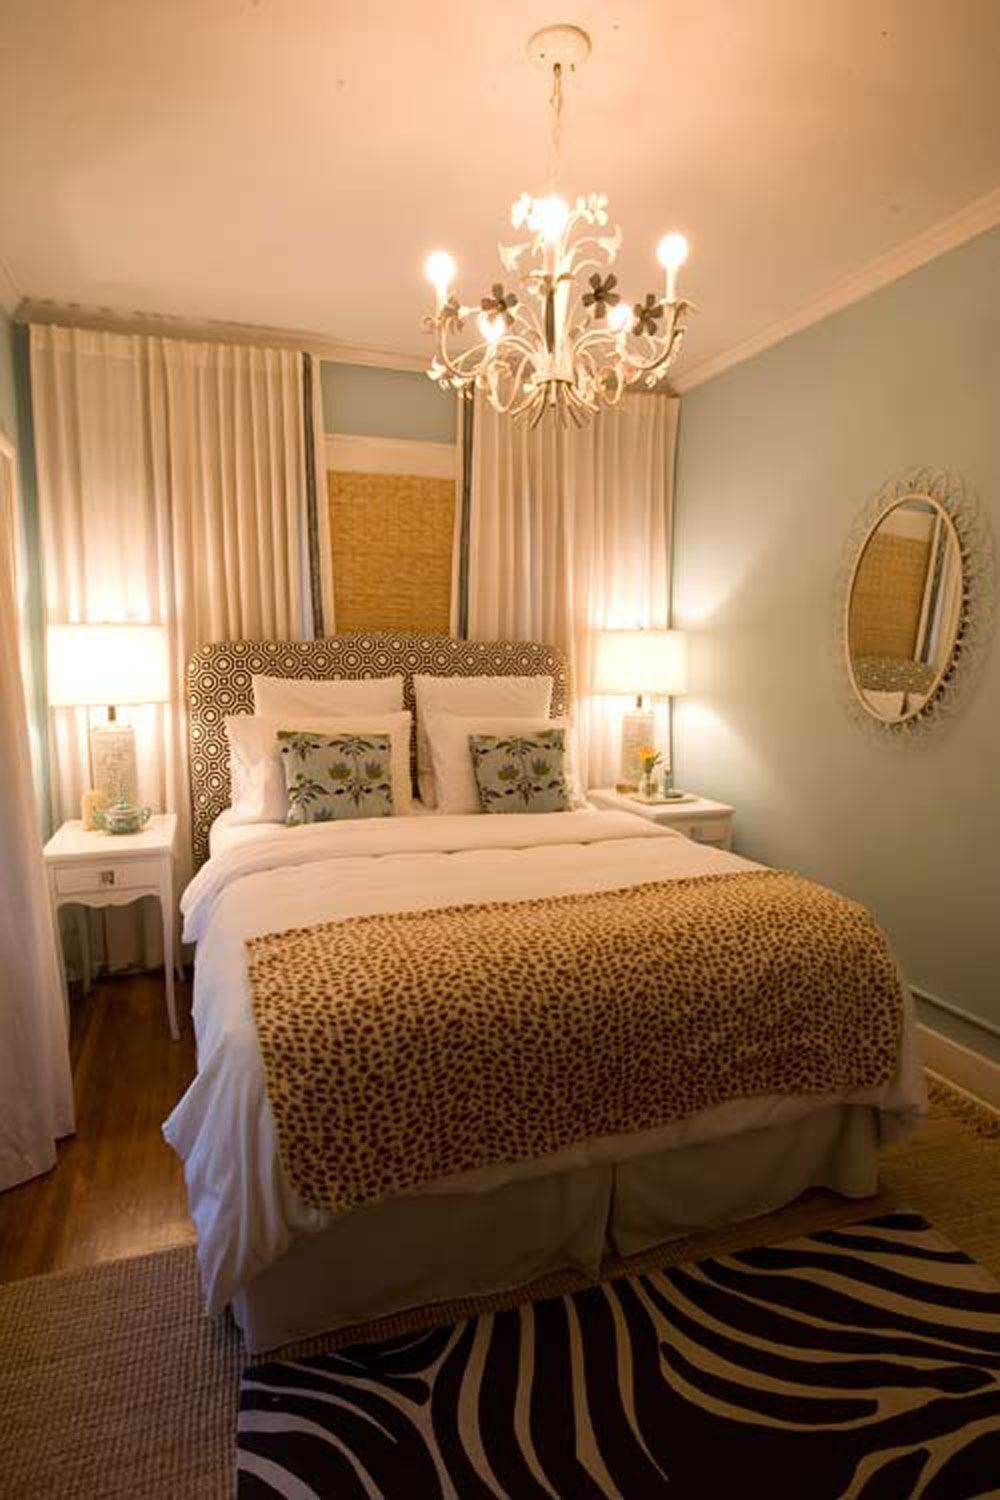 Design tips for decorating a small bedroom on a budget - Small bedroom decorating ideas on a budget ...